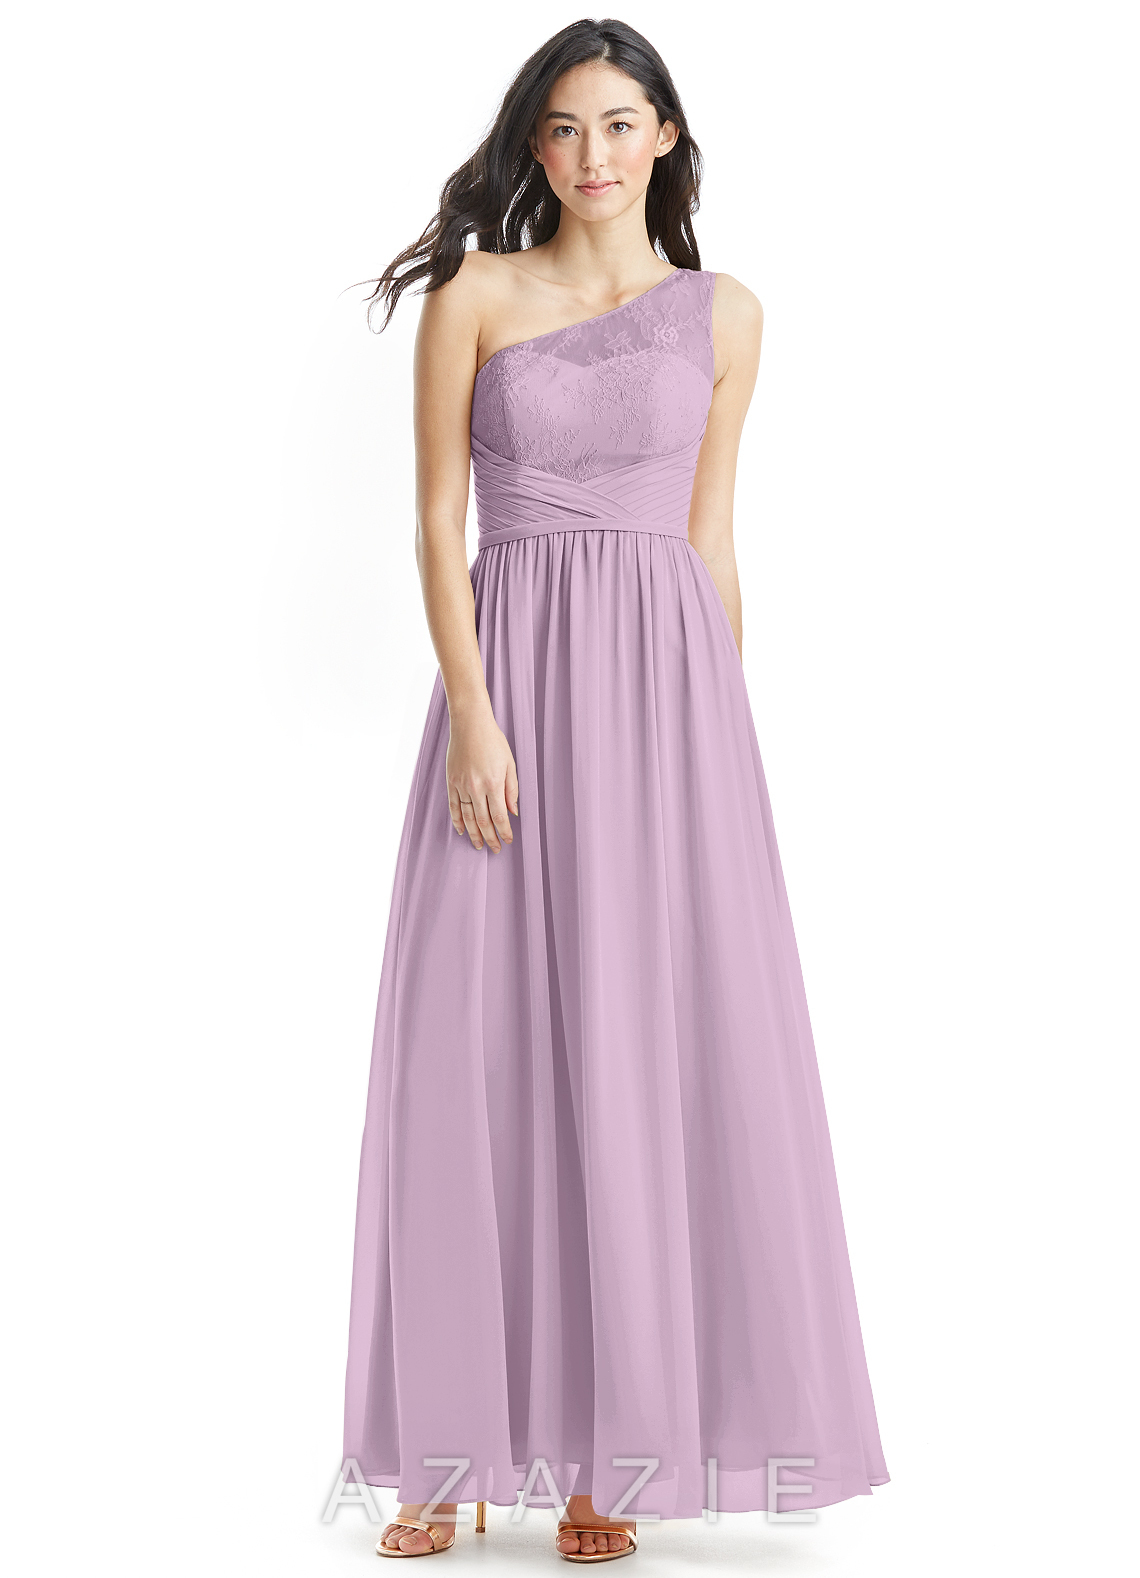 0ea8c2be983f Azazie Anastasia Bridesmaid Dress | Azazie